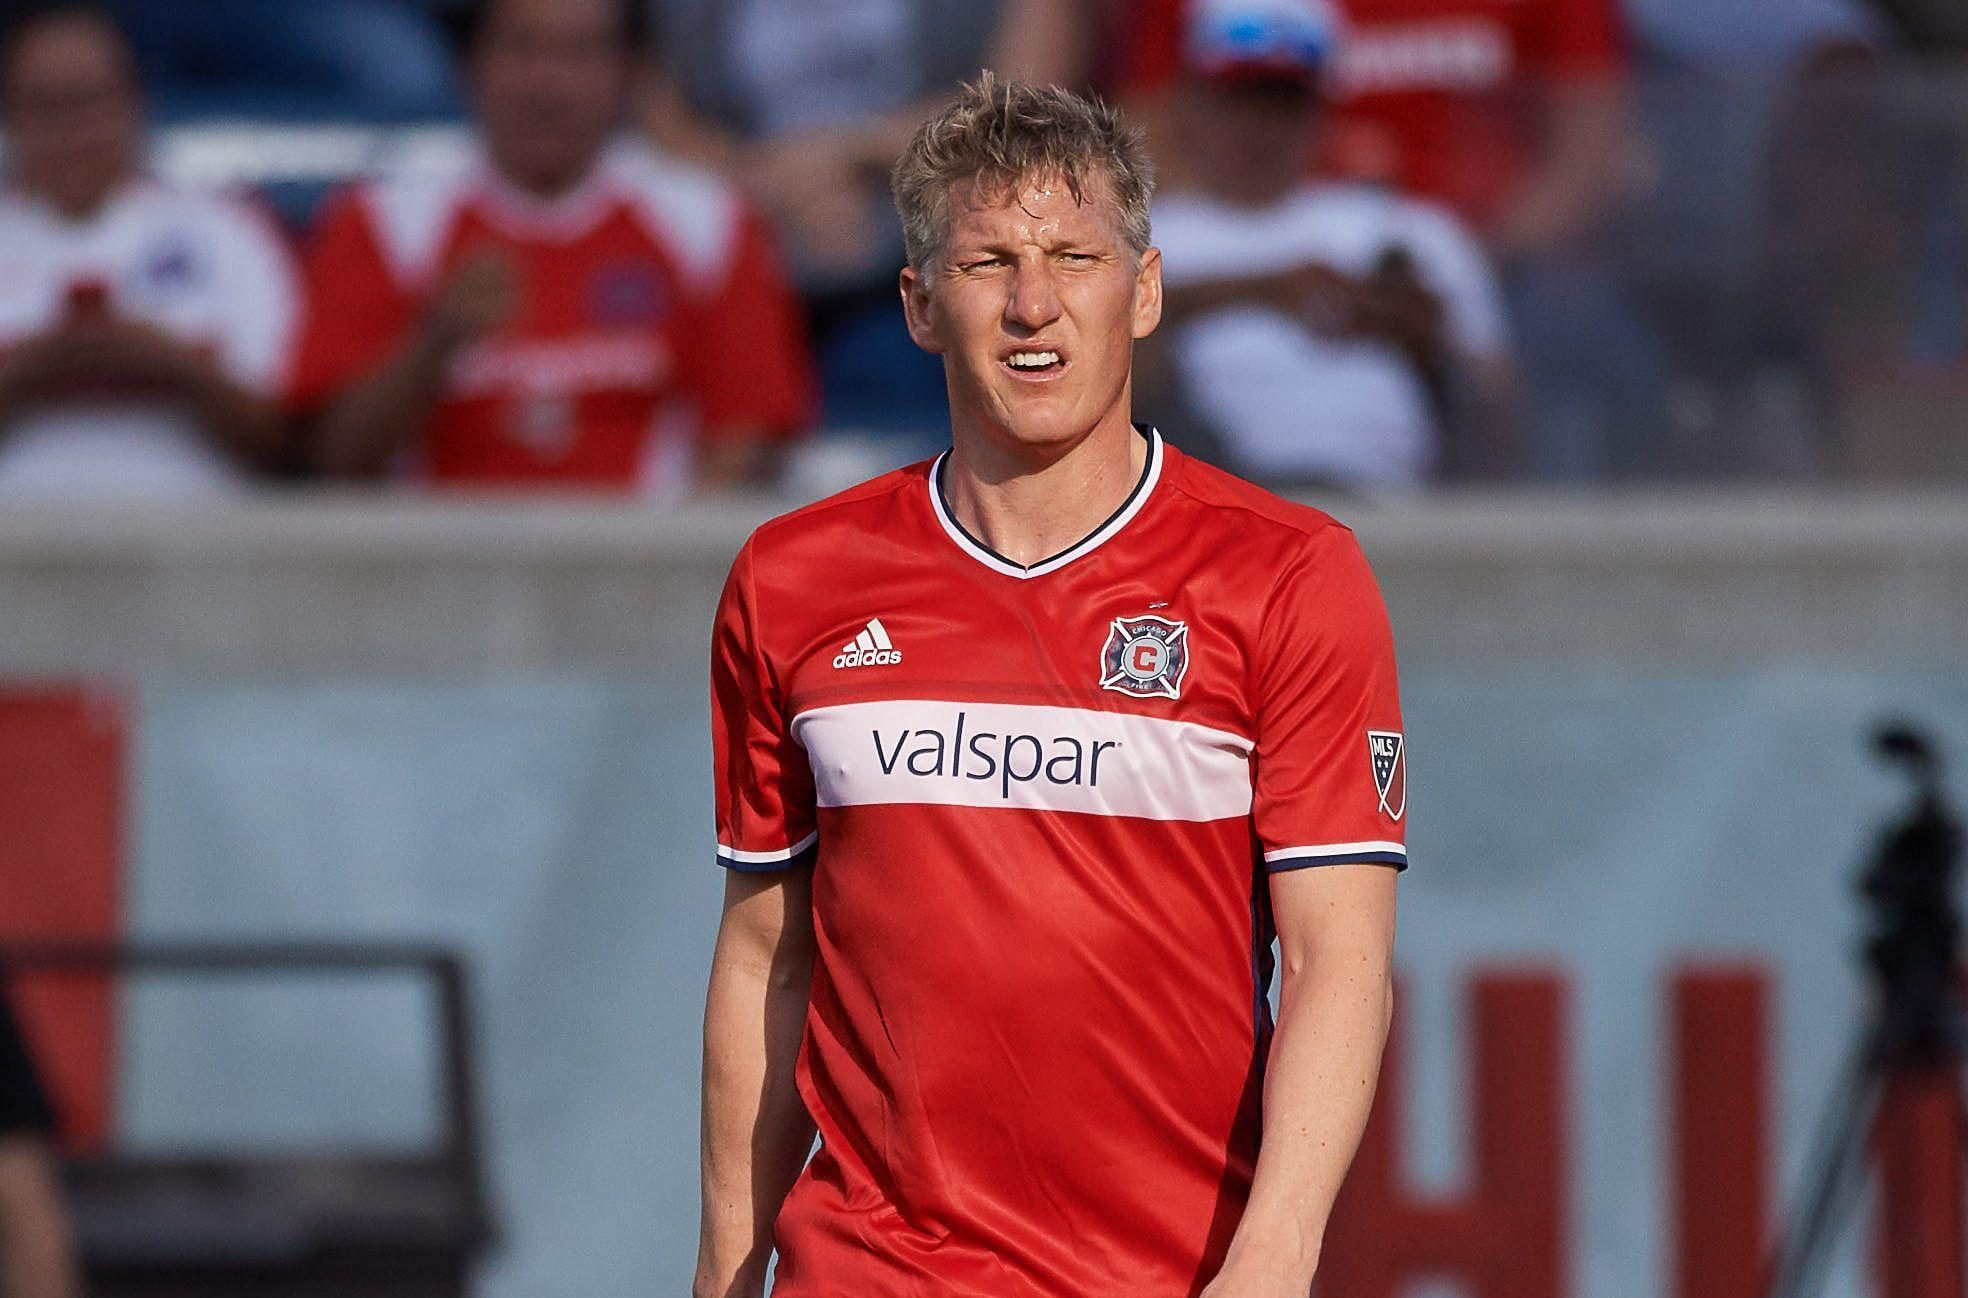 He's tried his best but has so far been unsuccessful in winning the World Cup for Chicago Fire